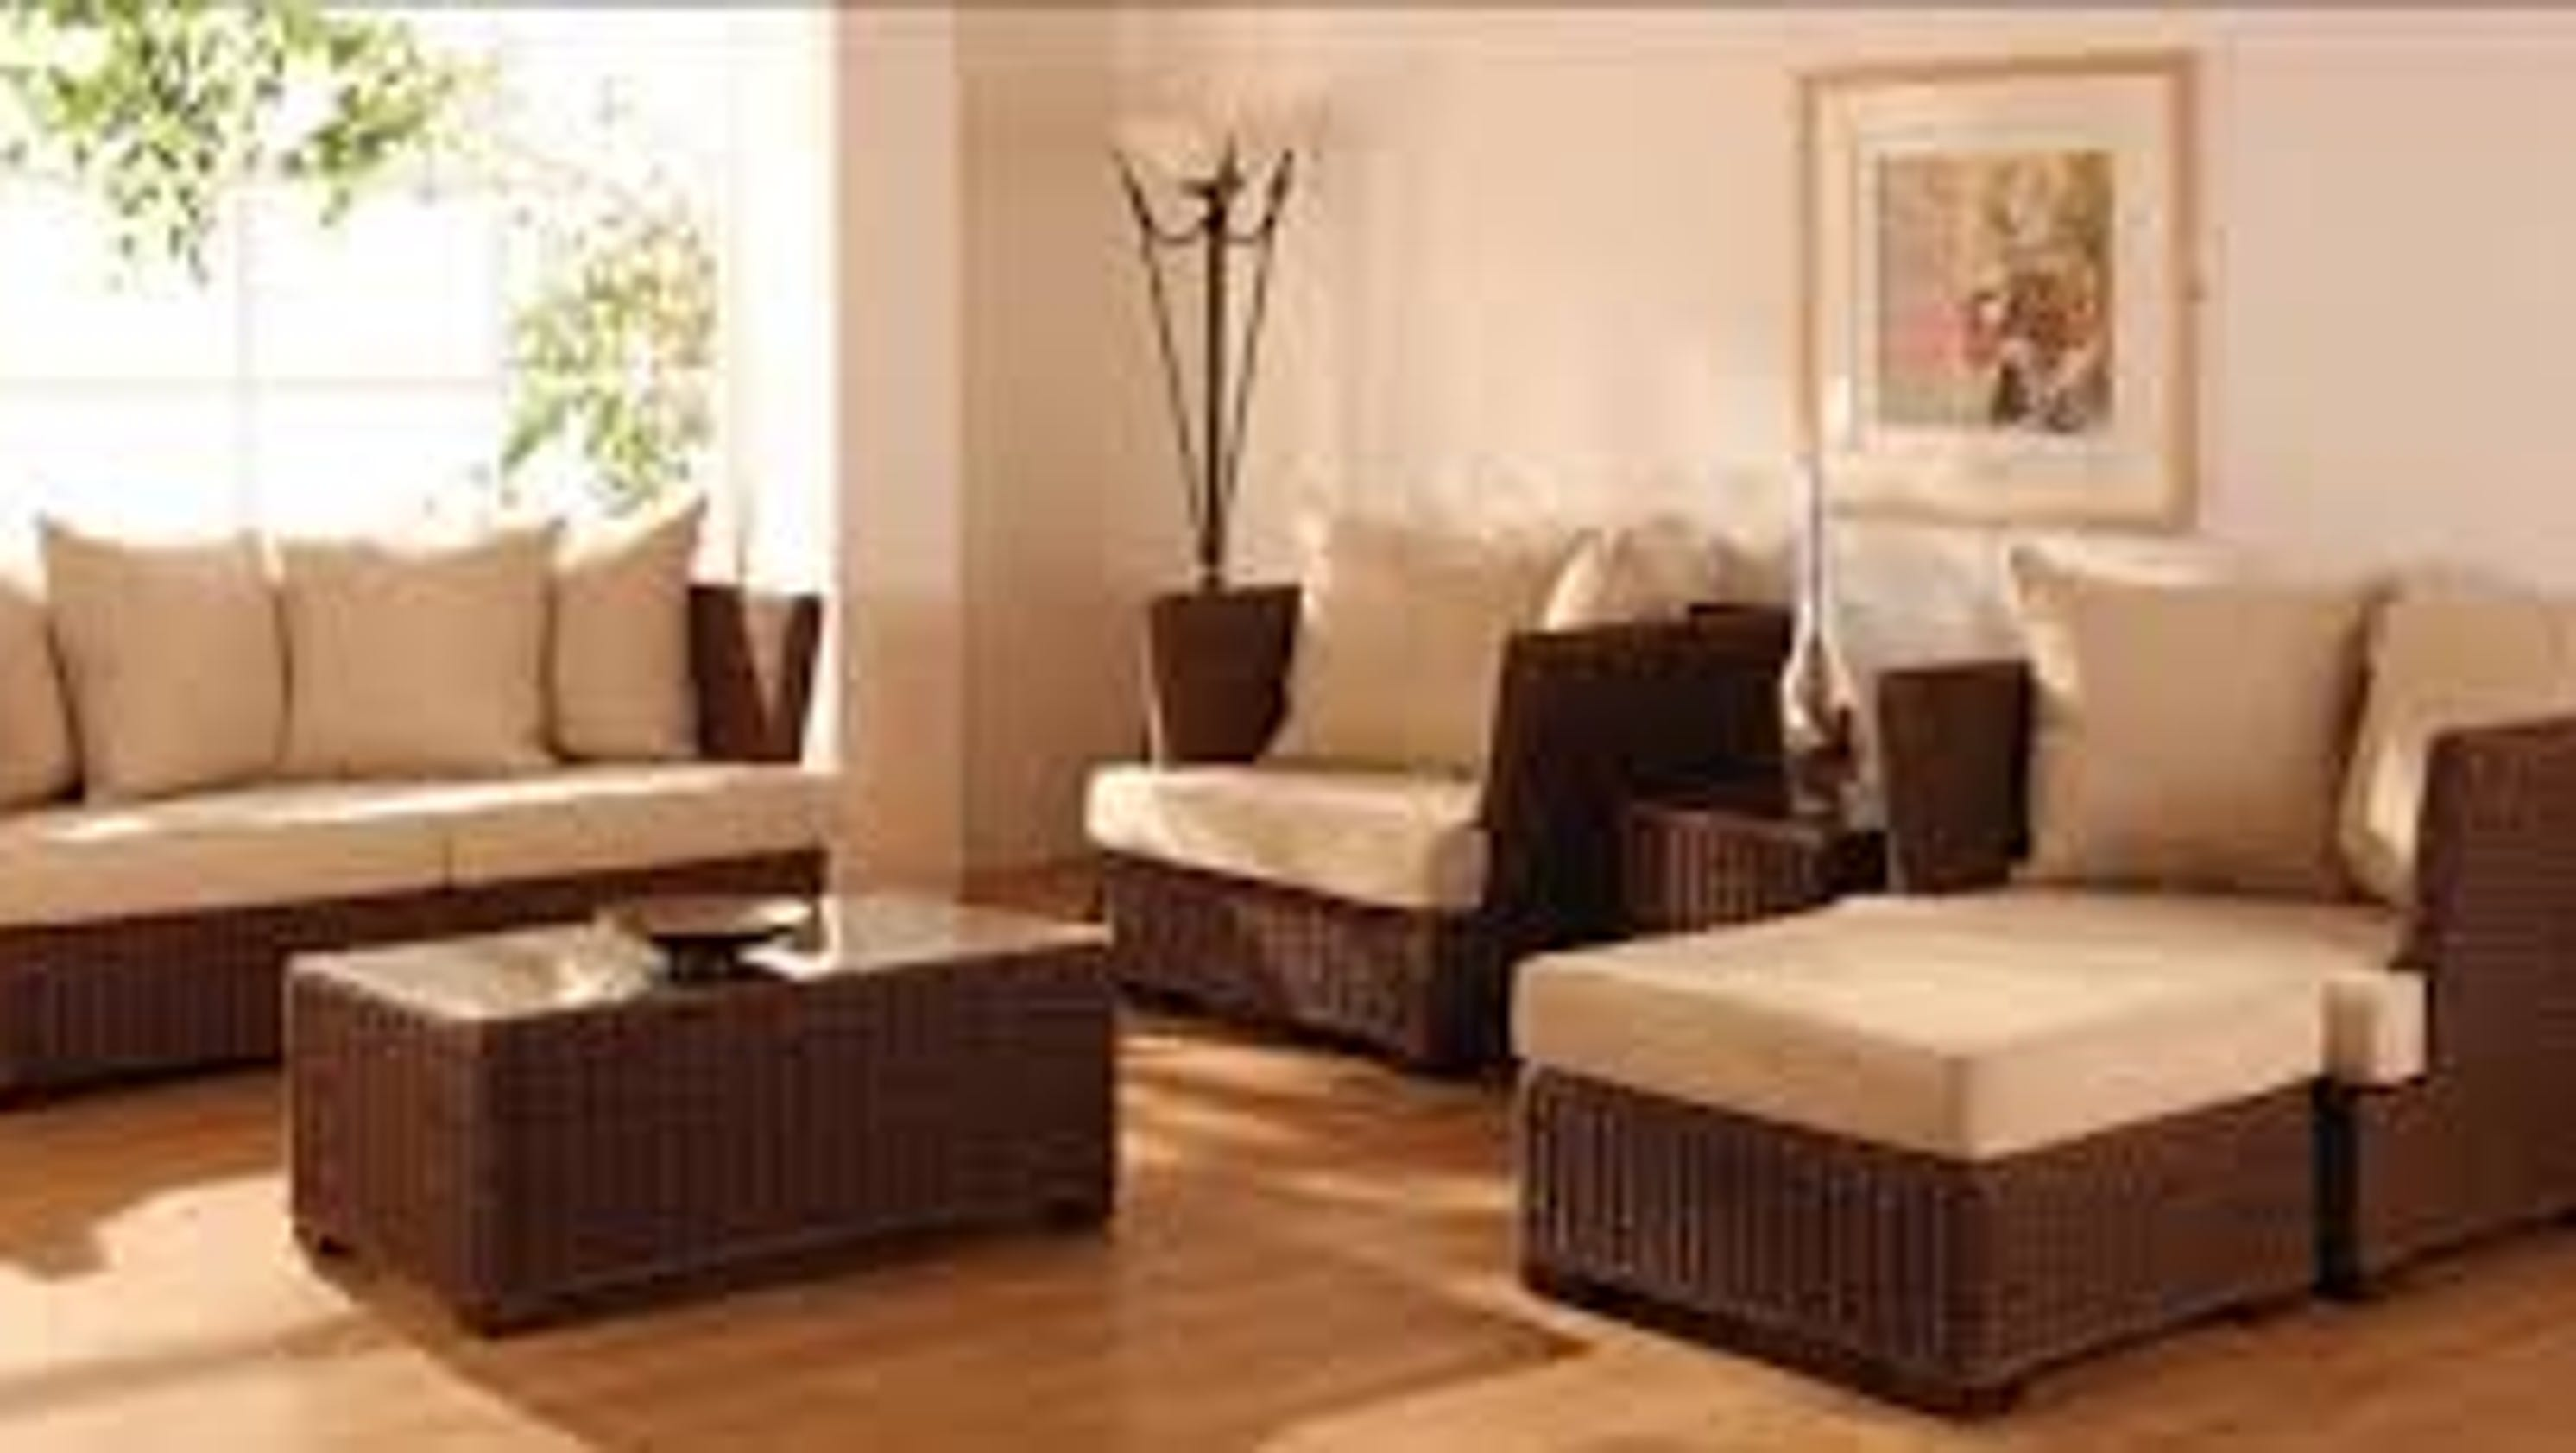 Insiders save at home furniture for At home furniture lafayette la